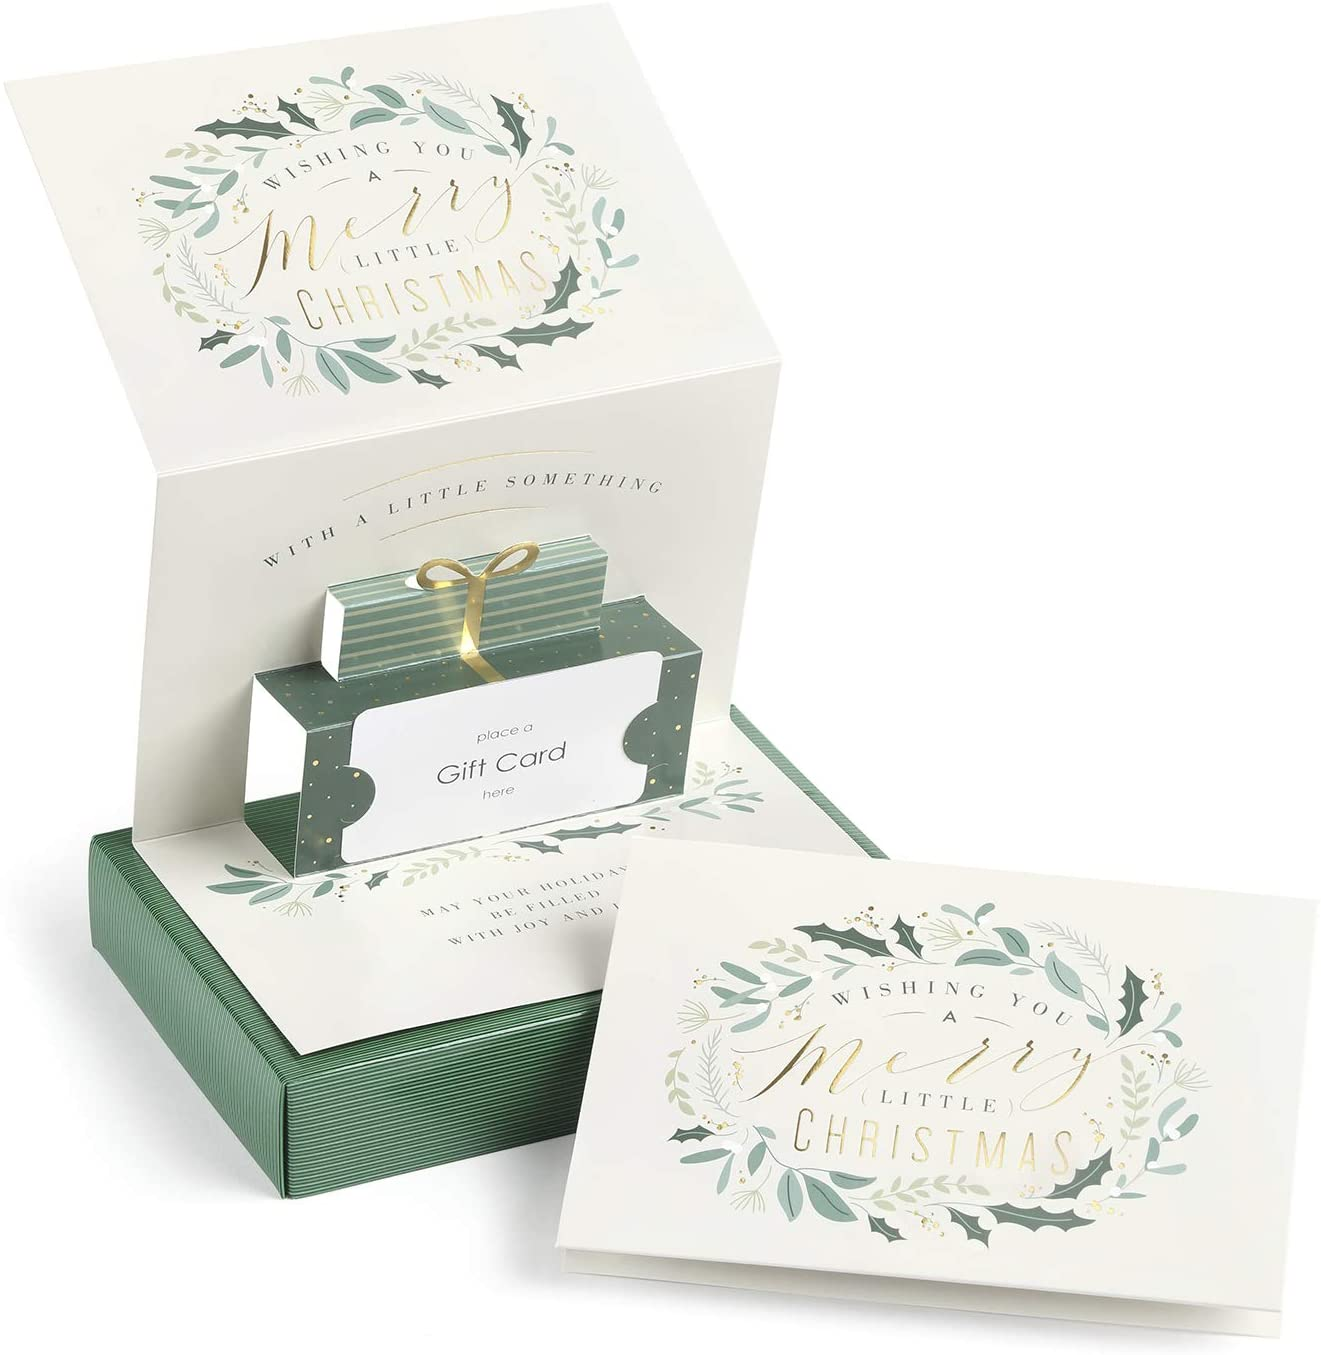 Masterpiece Studios Holiday Collection 10-Count Pop-Up Gift Greeting Gift Card Holders with Envelopes, 5